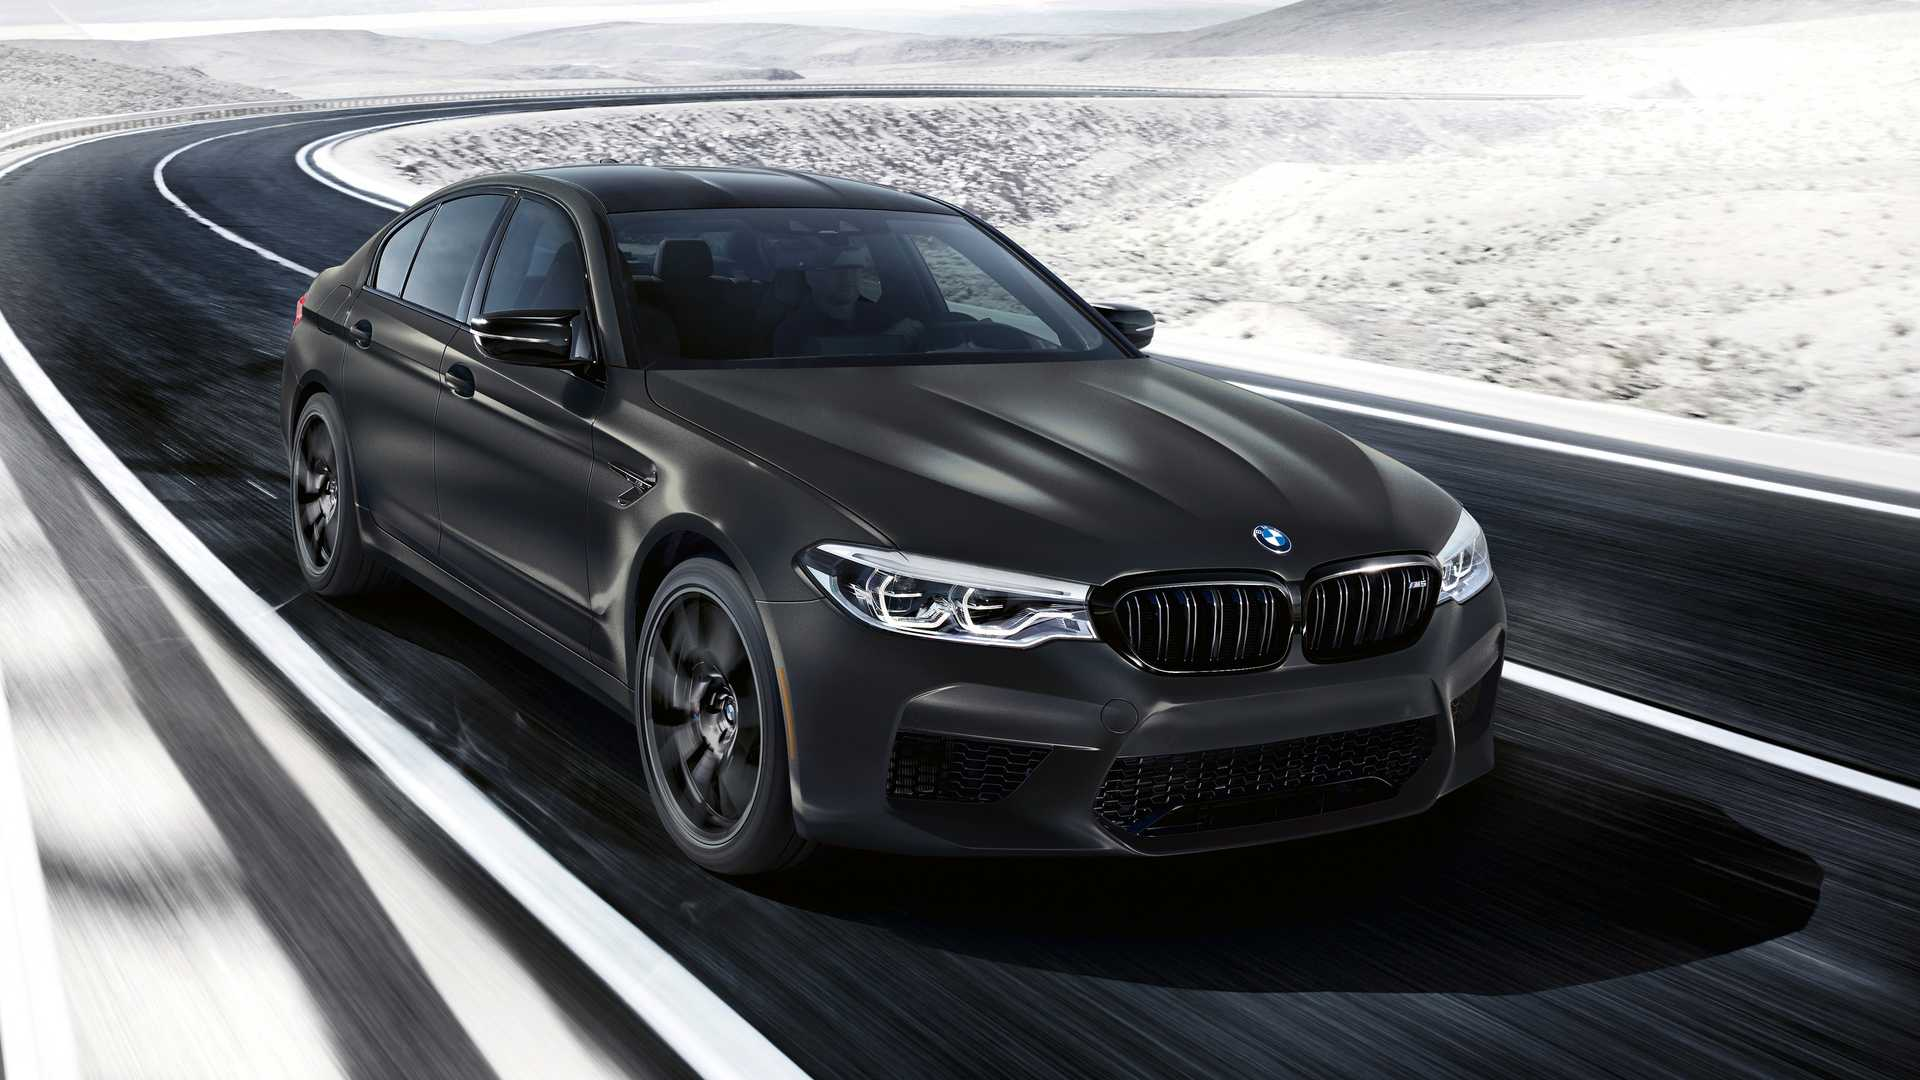 66 All New 2020 Bmw M5 Edition 35 Years Specs